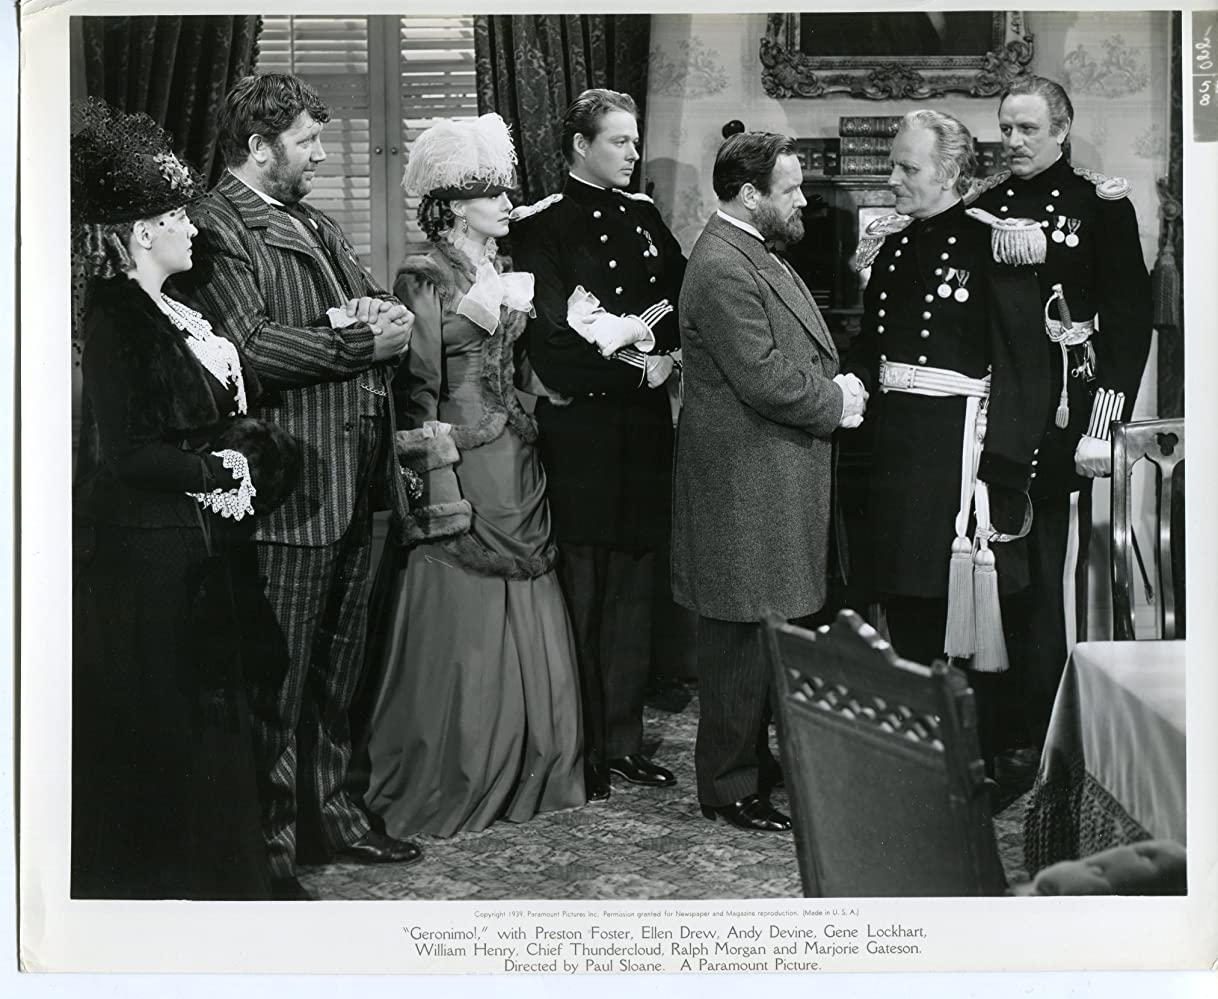 Joseph Crehan, Andy Devine, Ellen Drew, William Henry, Kitty Kelly, Ralph Morgan, and Pierre Watkin in Geronimo (1939)